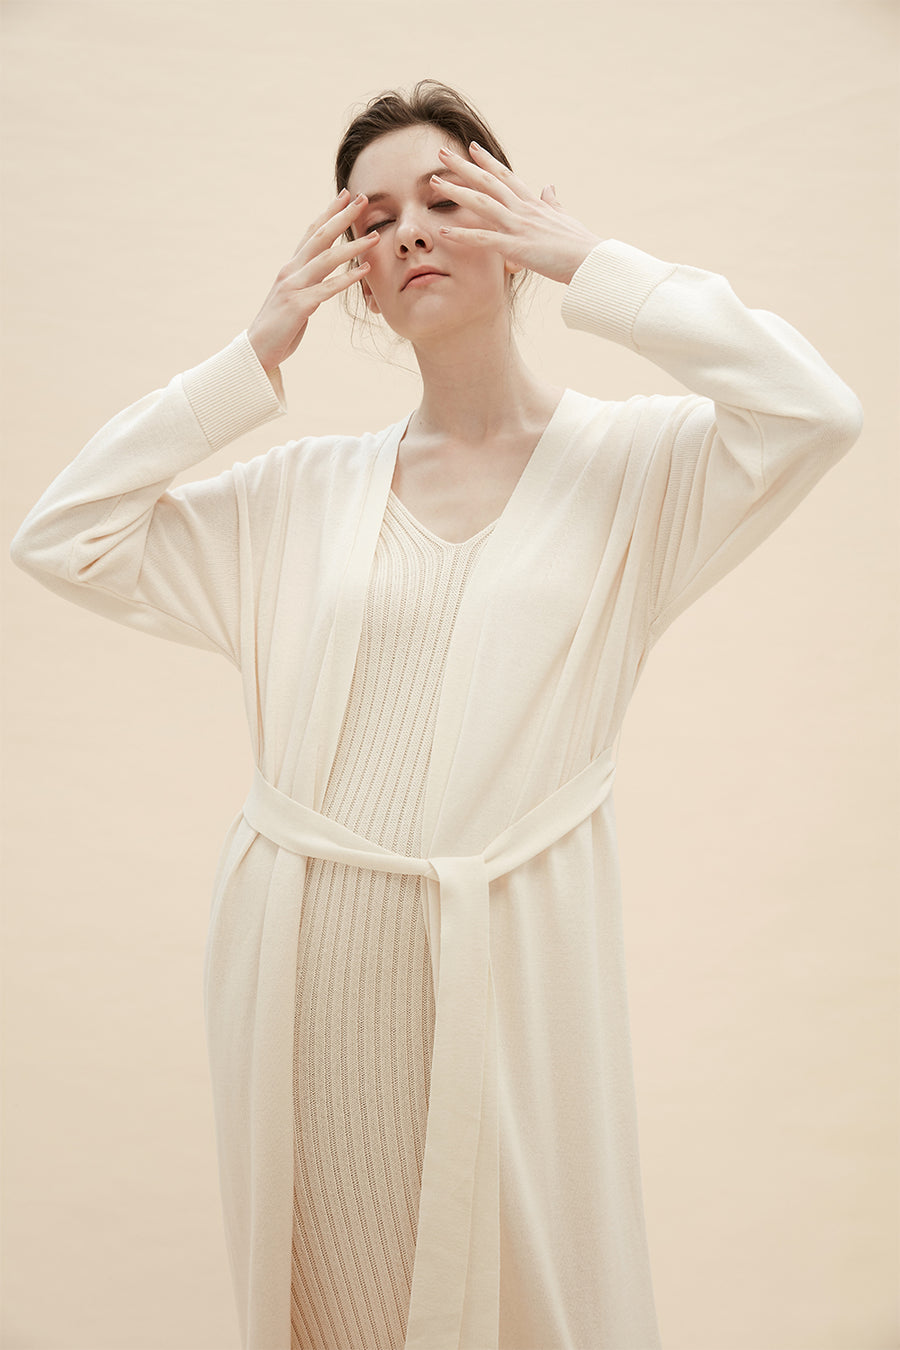 Giovanna - Longline Cardigan With Tie Belt - Zelle Studio